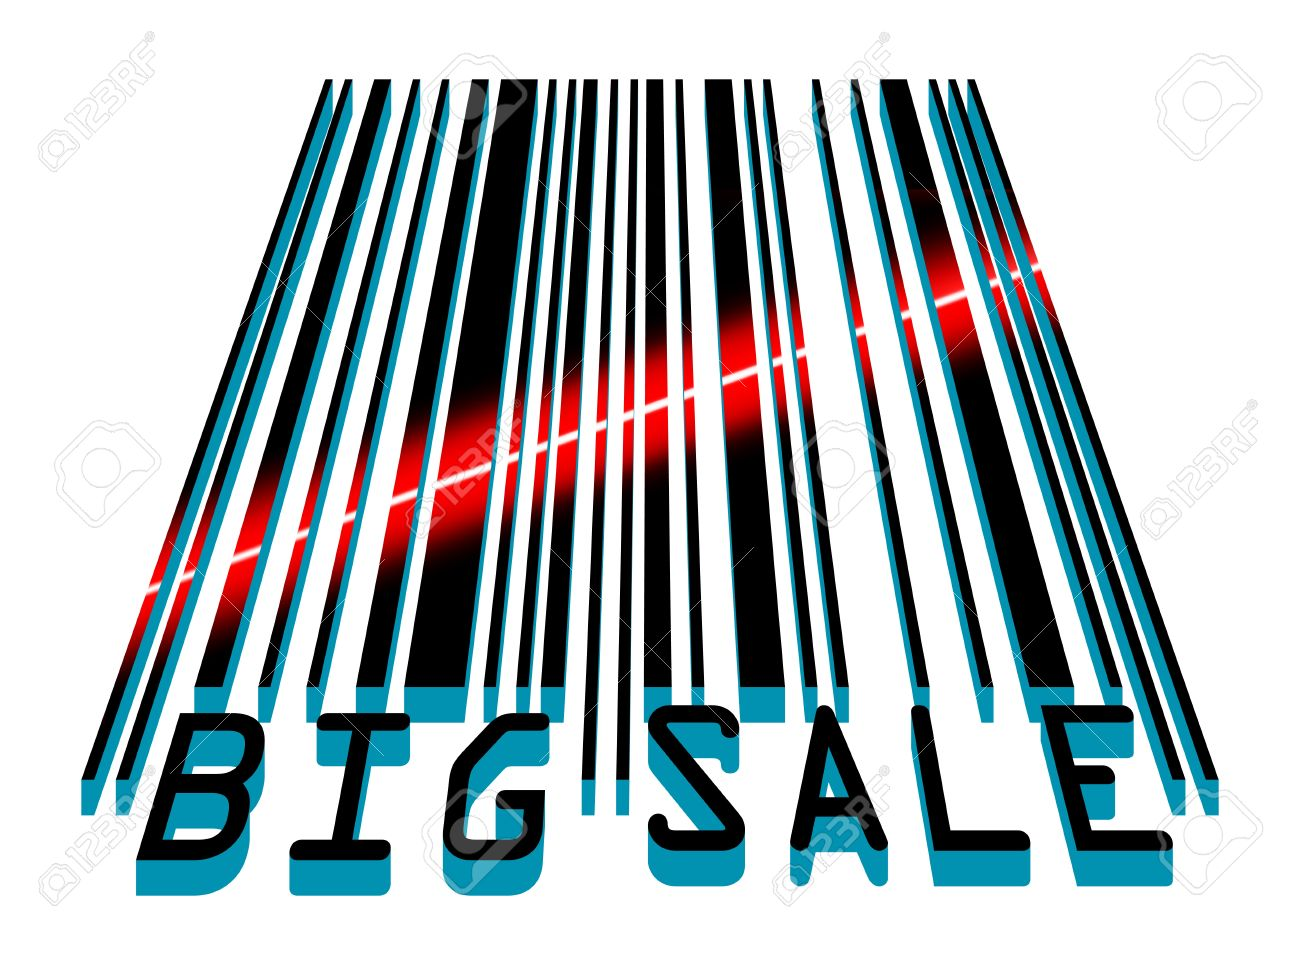 Big Sale Bar Code Concept With Laser Light. EPS 8 Vector File.